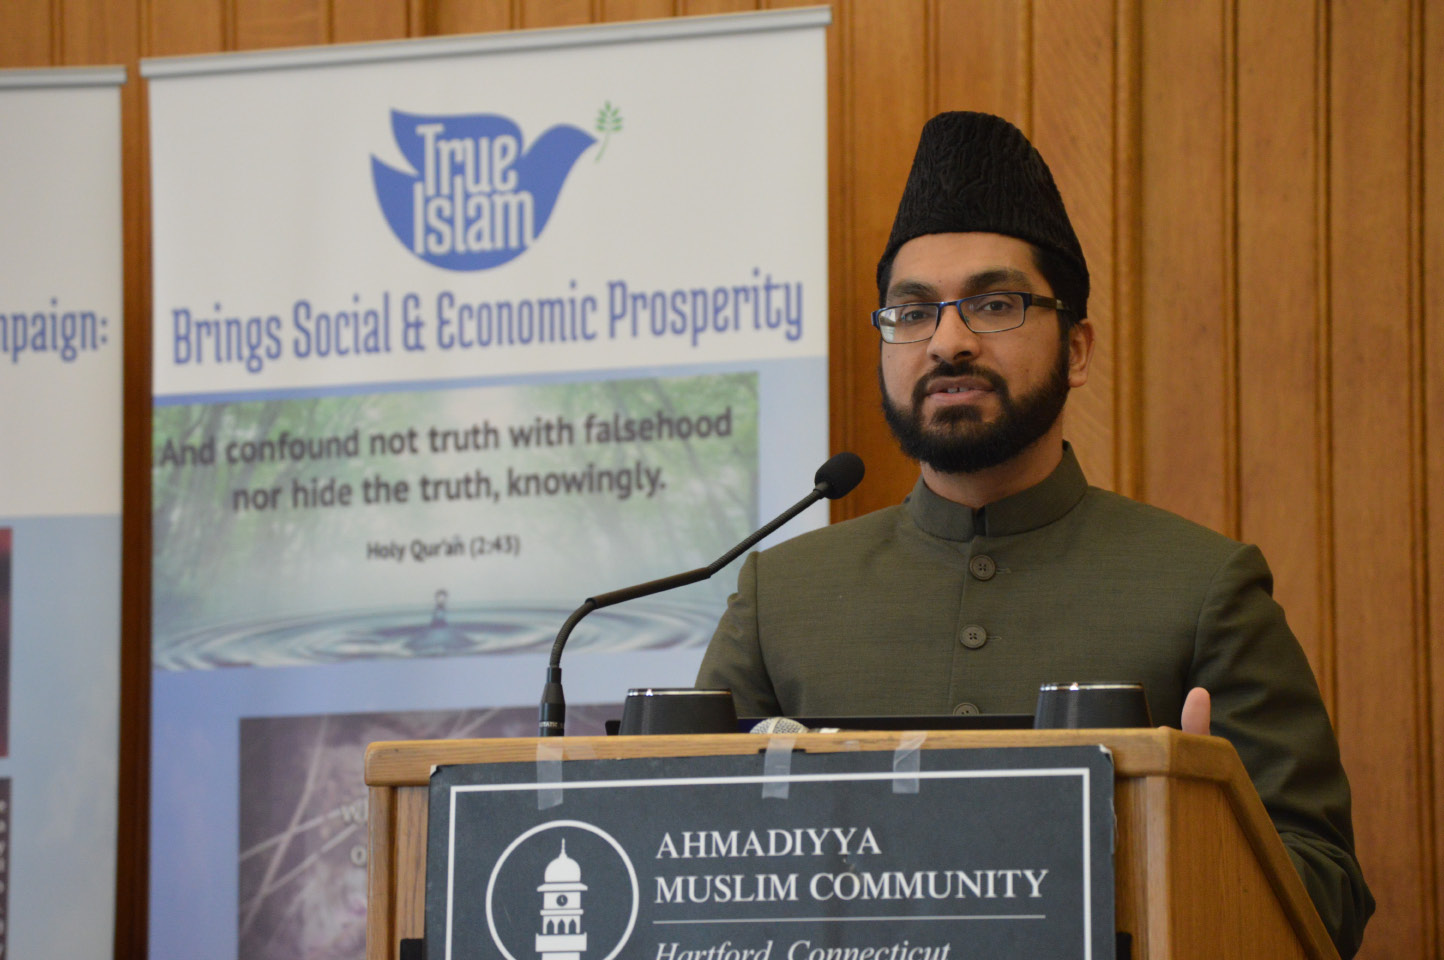 Hamid Malik, regional missionary in charge of the New England and upstate New York Ahmadiyya muslim communities, speaks during an event Thursday at the Capitol hosted by the Ahmadiyya Community of Connecticut. | Mike Savino, Record-Journal